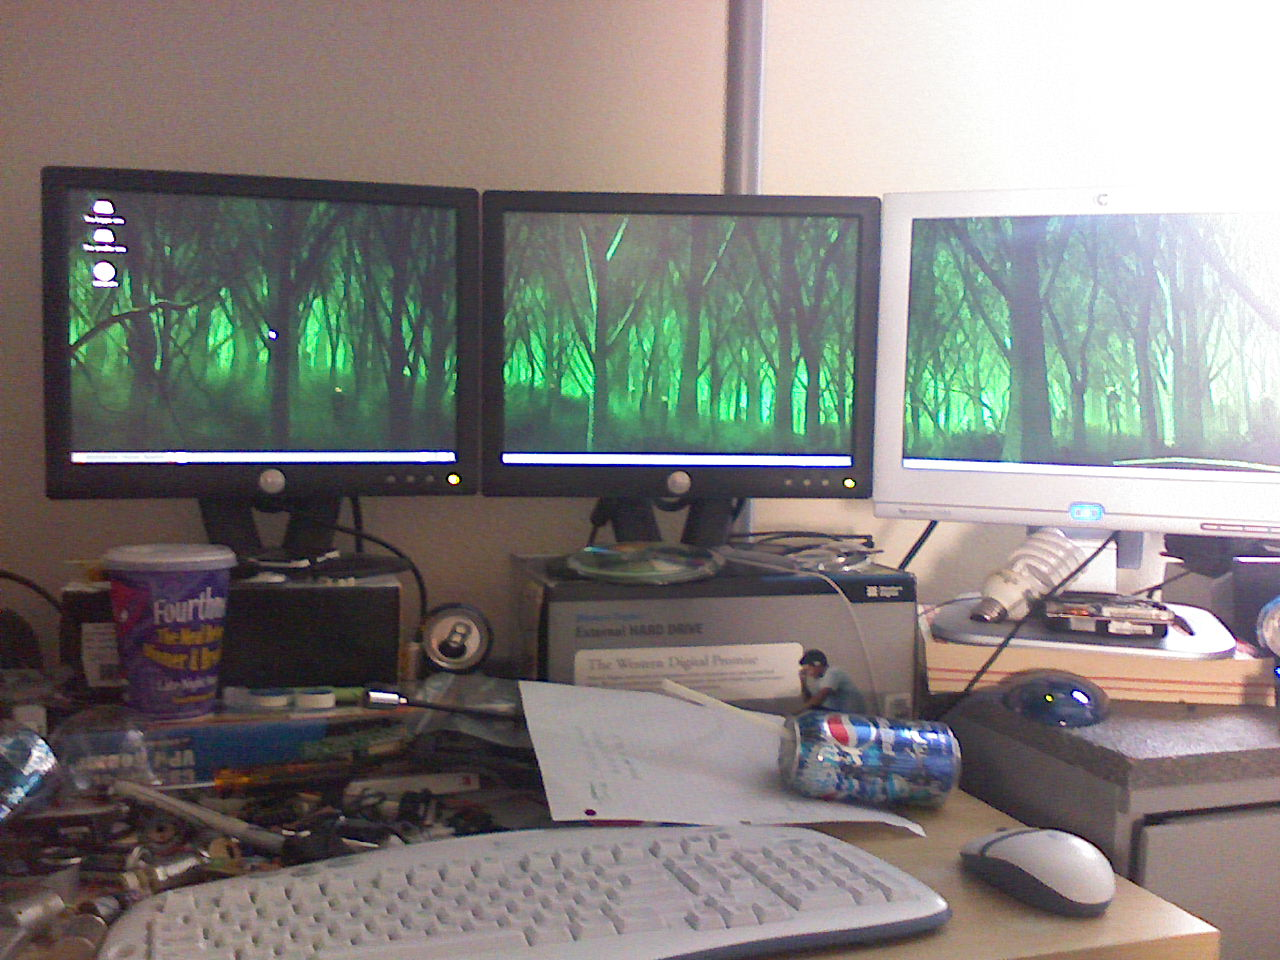 How to Set Up Multiple Monitors in Linux: 6 Steps